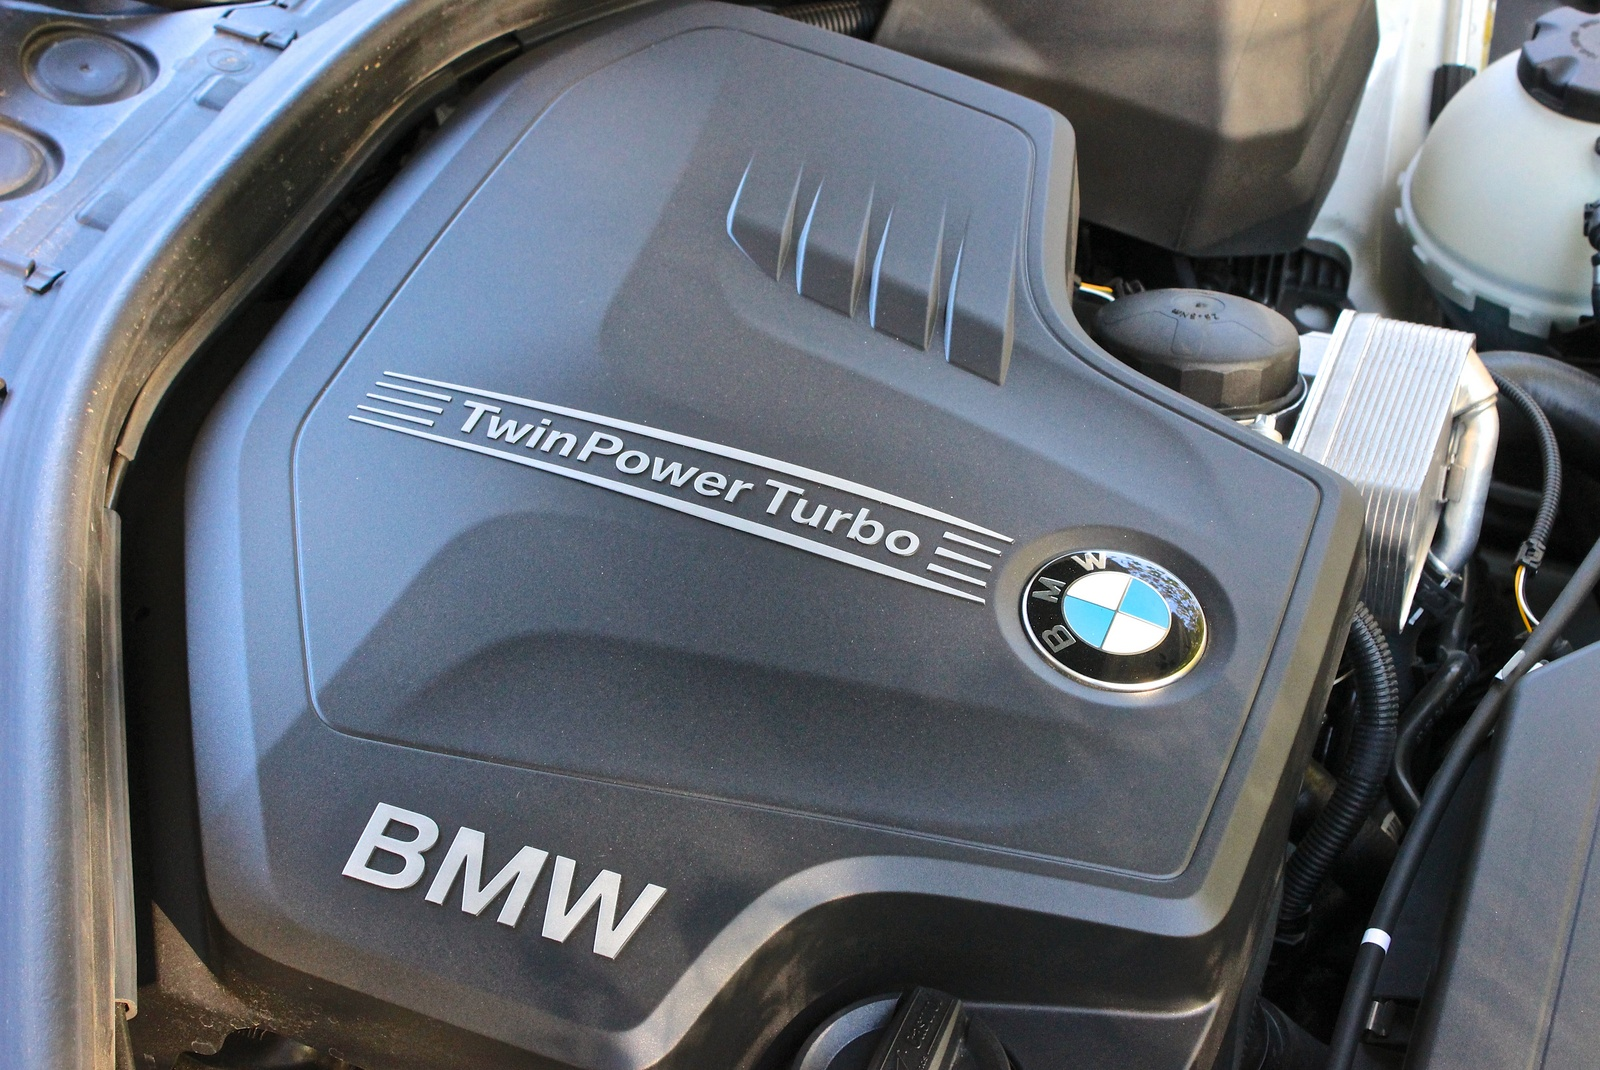 2014 BMW 4 Series engine, performance, engine